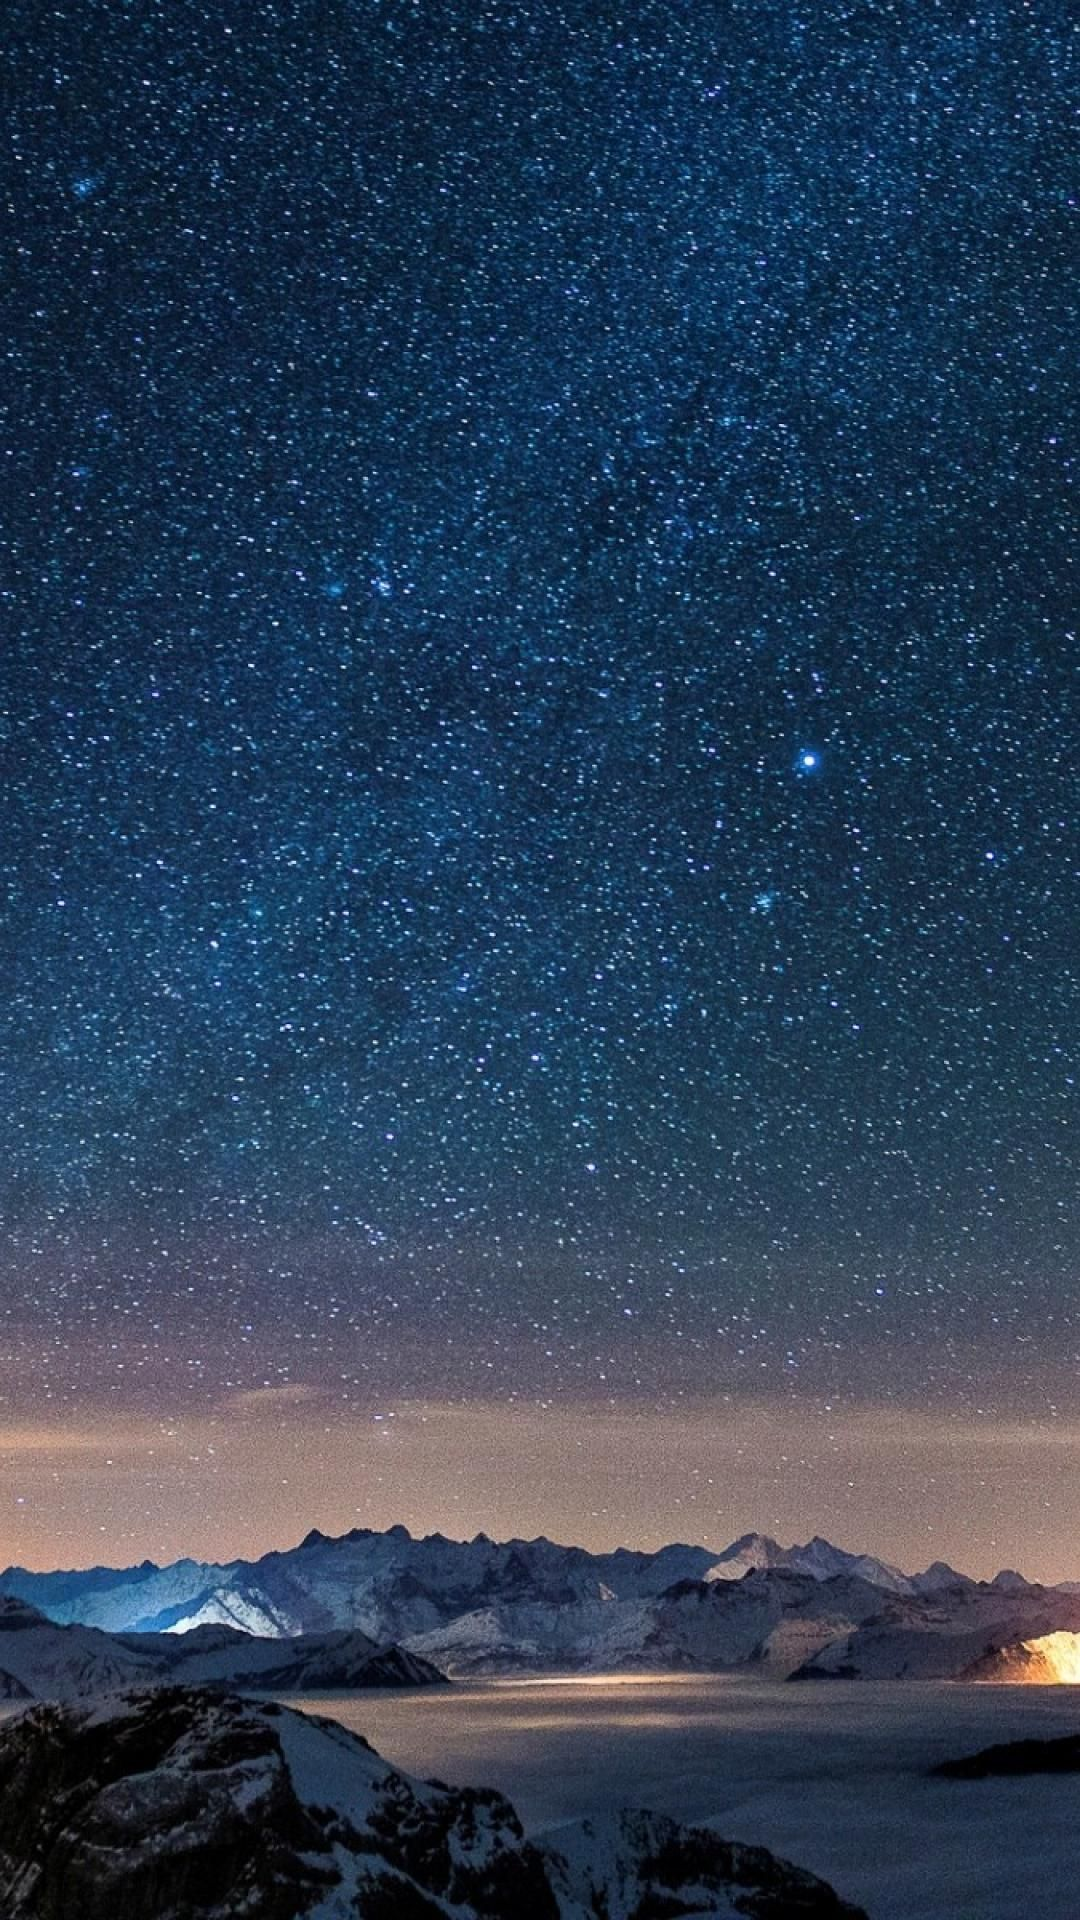 Beautiful Starry Sky Iphone Wallpaper Iphone Wallpaper Sky Iphone Wallpaper Night Best Iphone Wallpapers